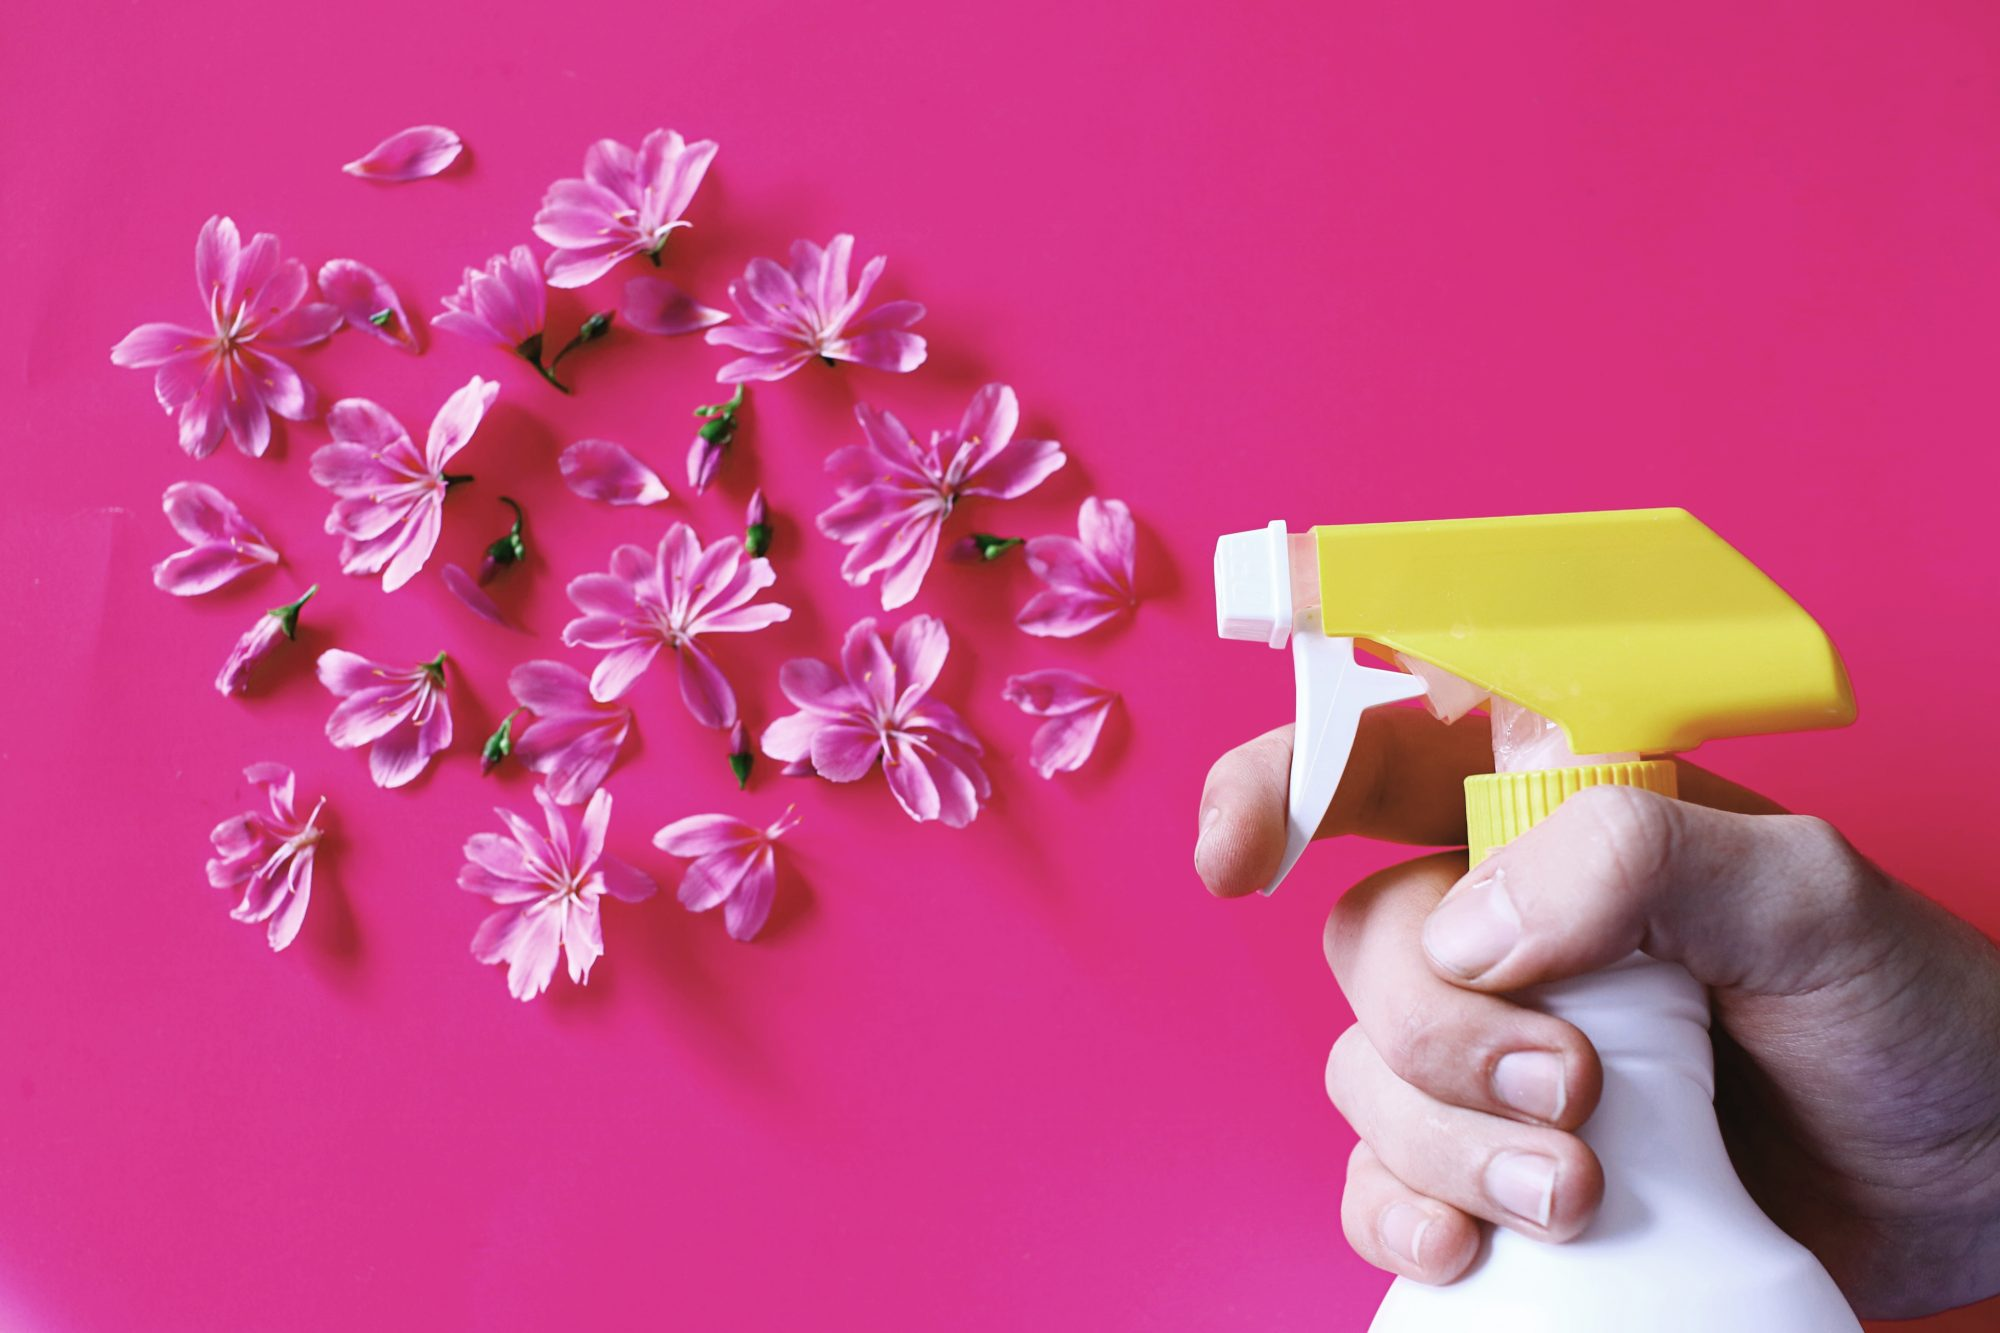 Spring Clean Your House Without Chemicals, spray bottle and flowers